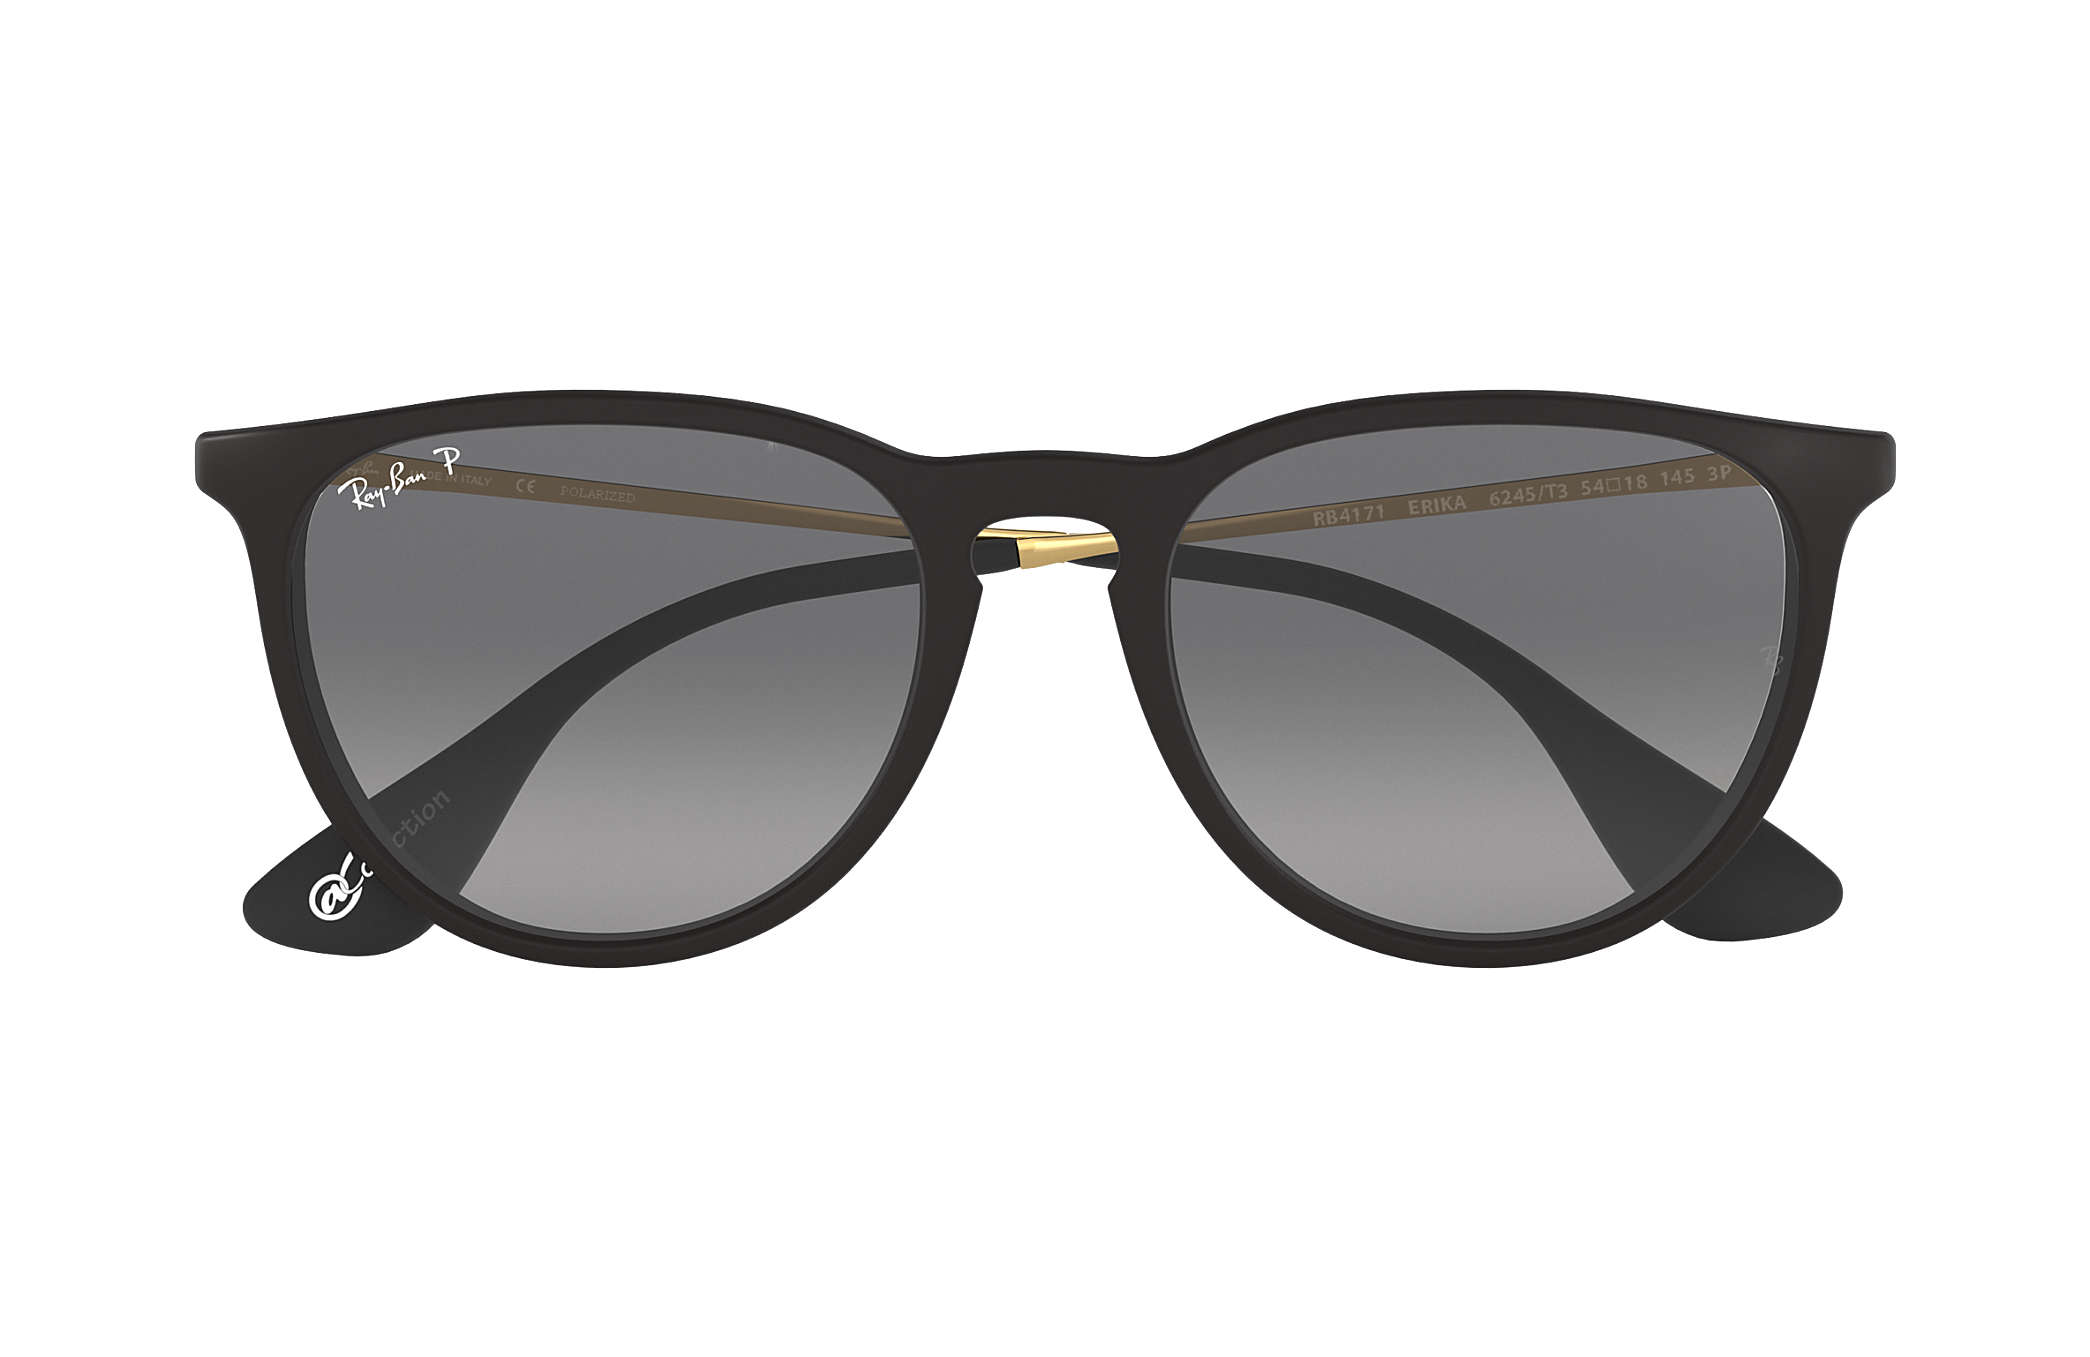 a4728ee31b ray ban sunglasses black and gold